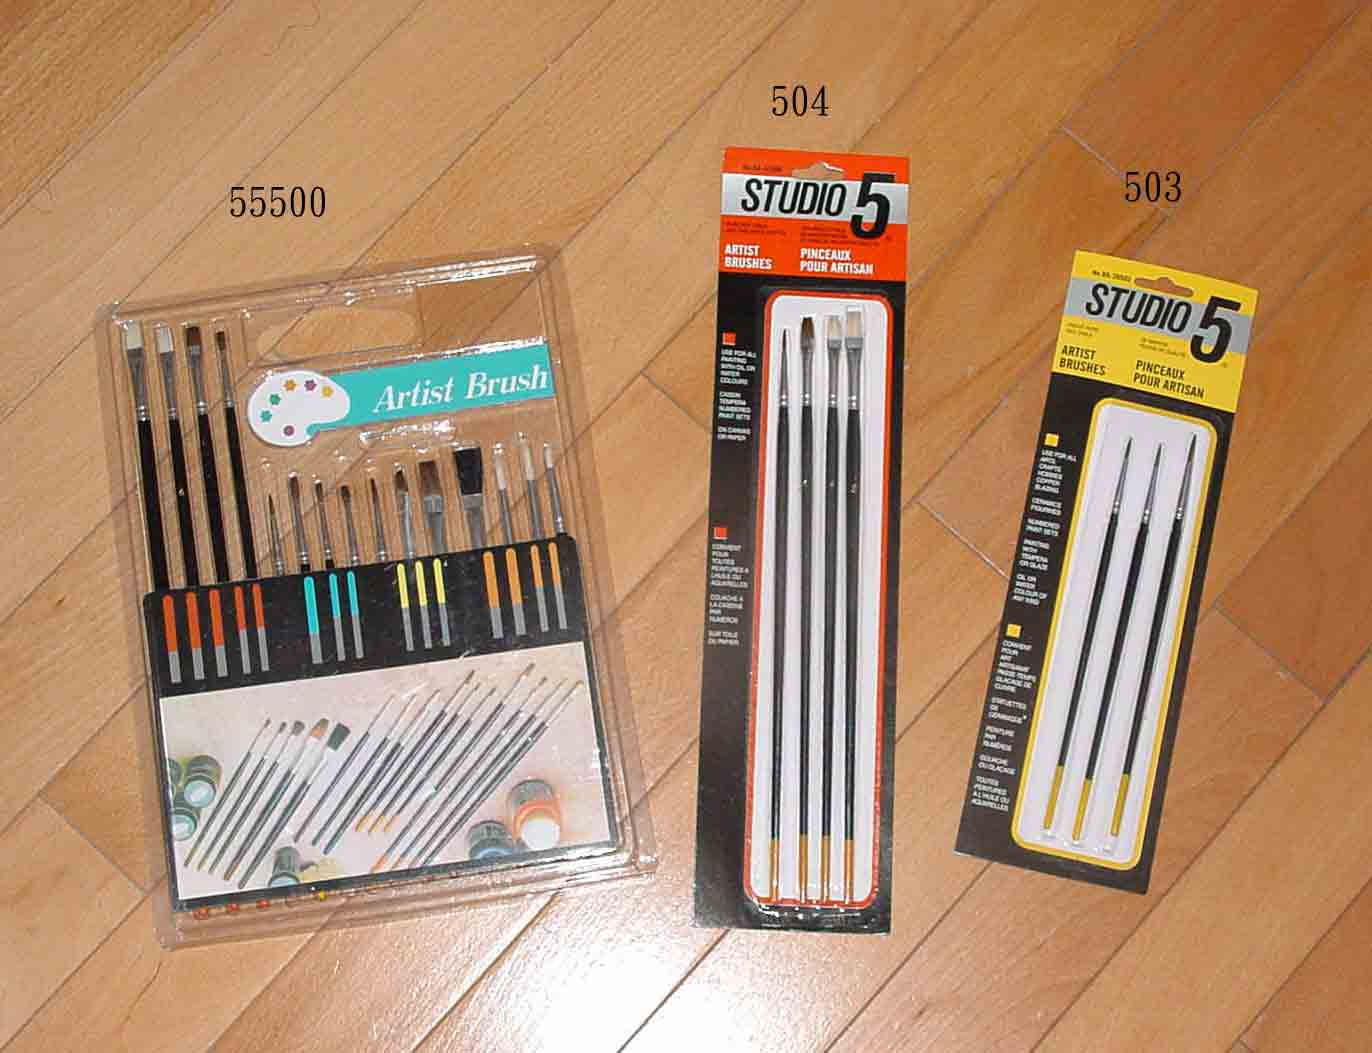 Artist Brush - Artist Brush Sets